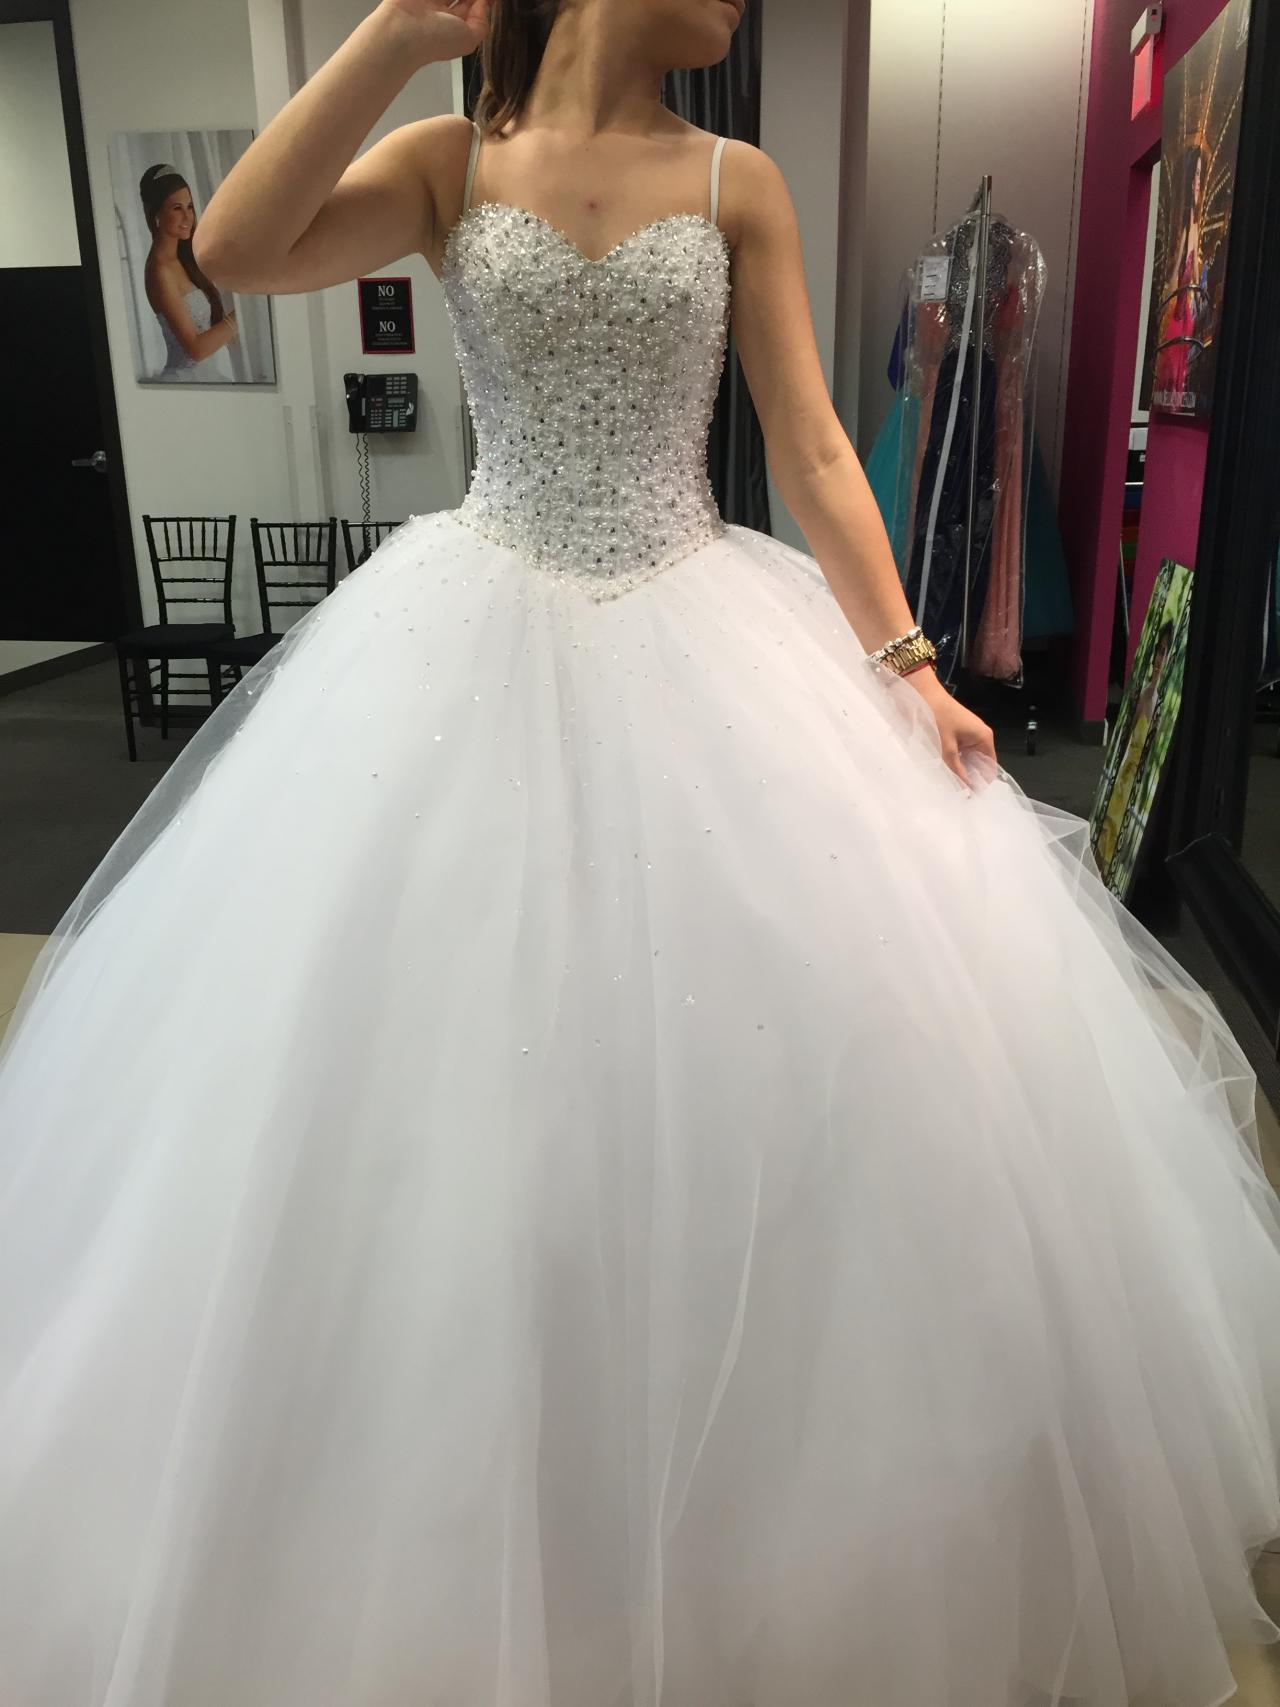 Beaded Tulle Ball Gown Wedding Dress · Onlyforbrides · Online Store ...